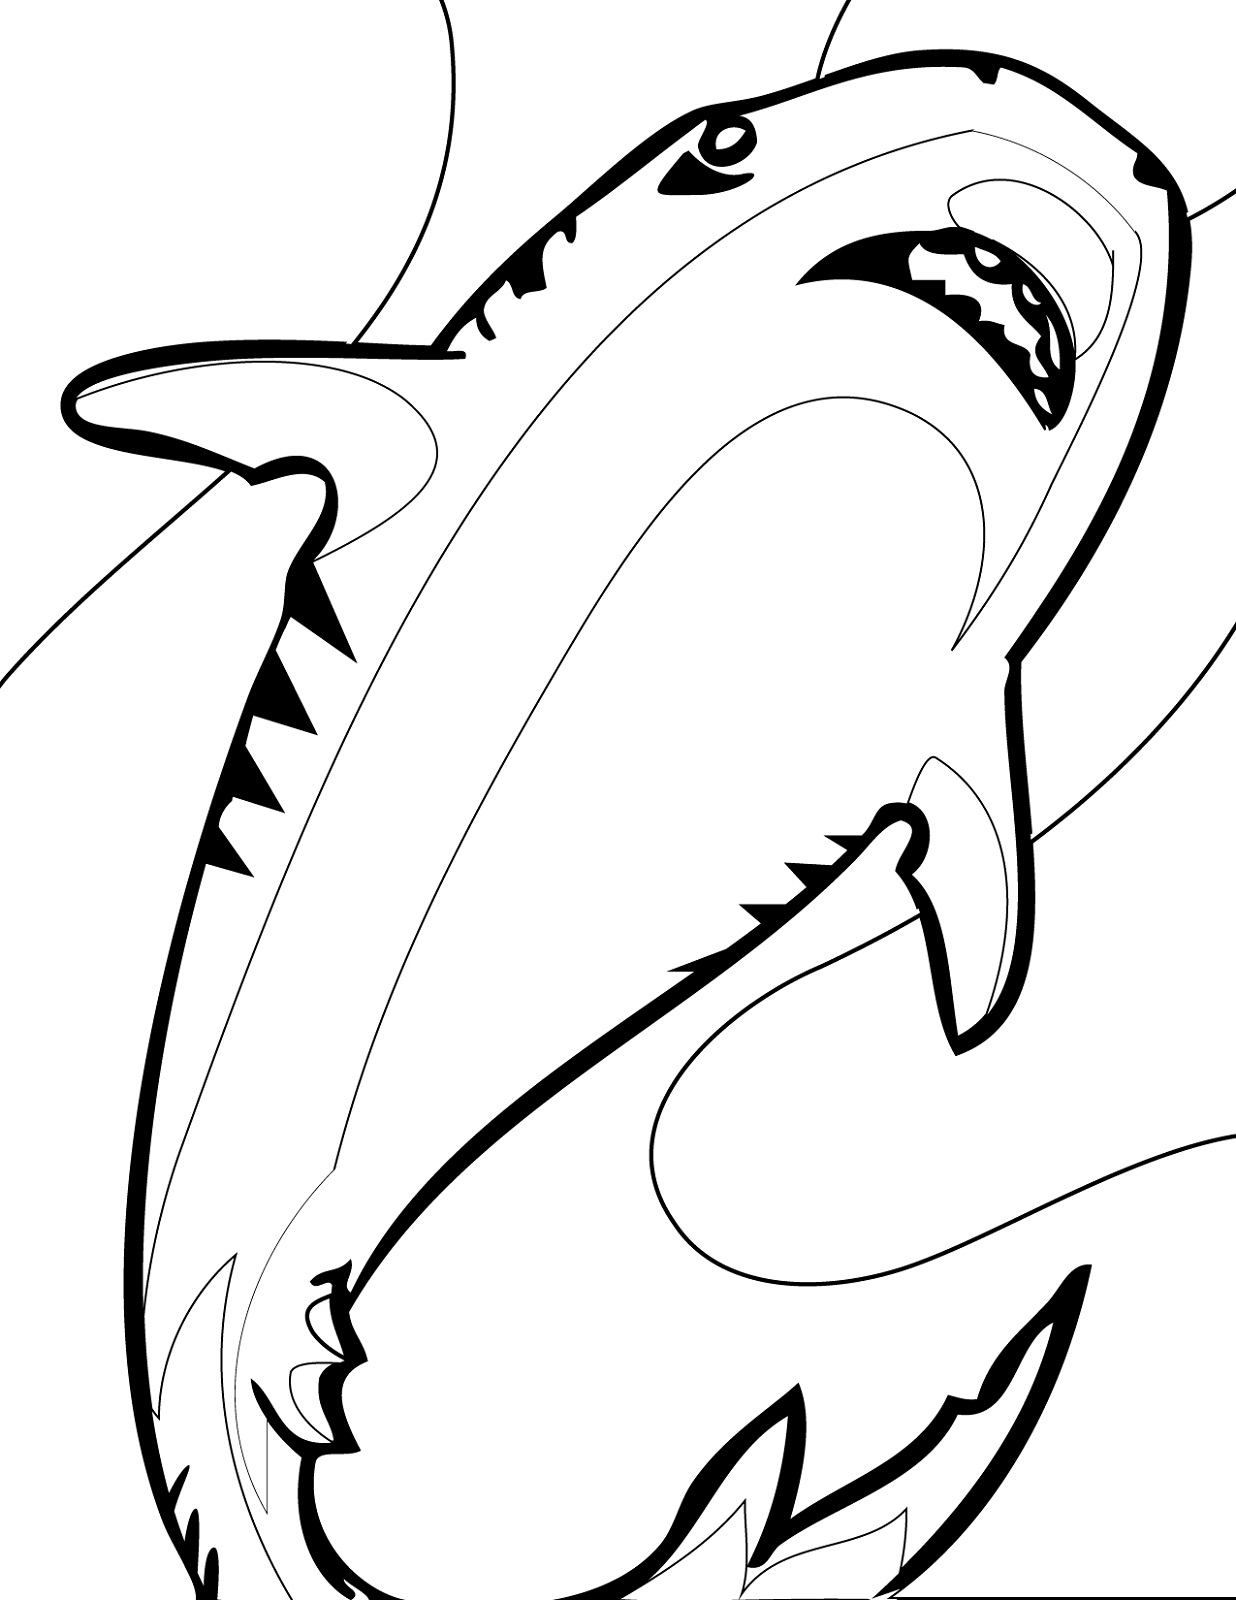 shark colouring picture sharks to color for children sharks kids coloring pages shark colouring picture